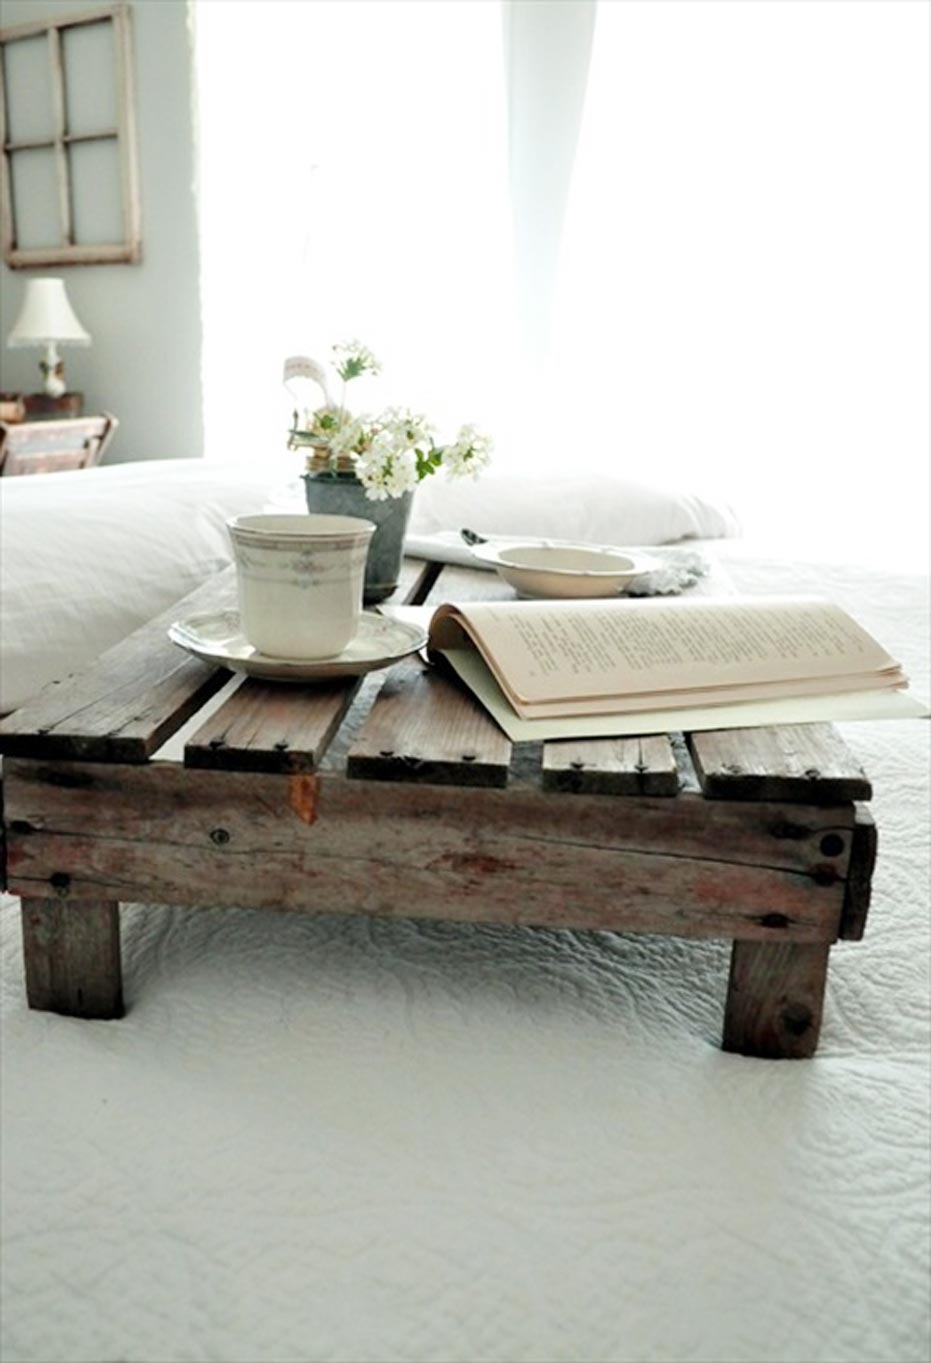 Coffe-Table-Wood-Pallet-Furniture-Idea